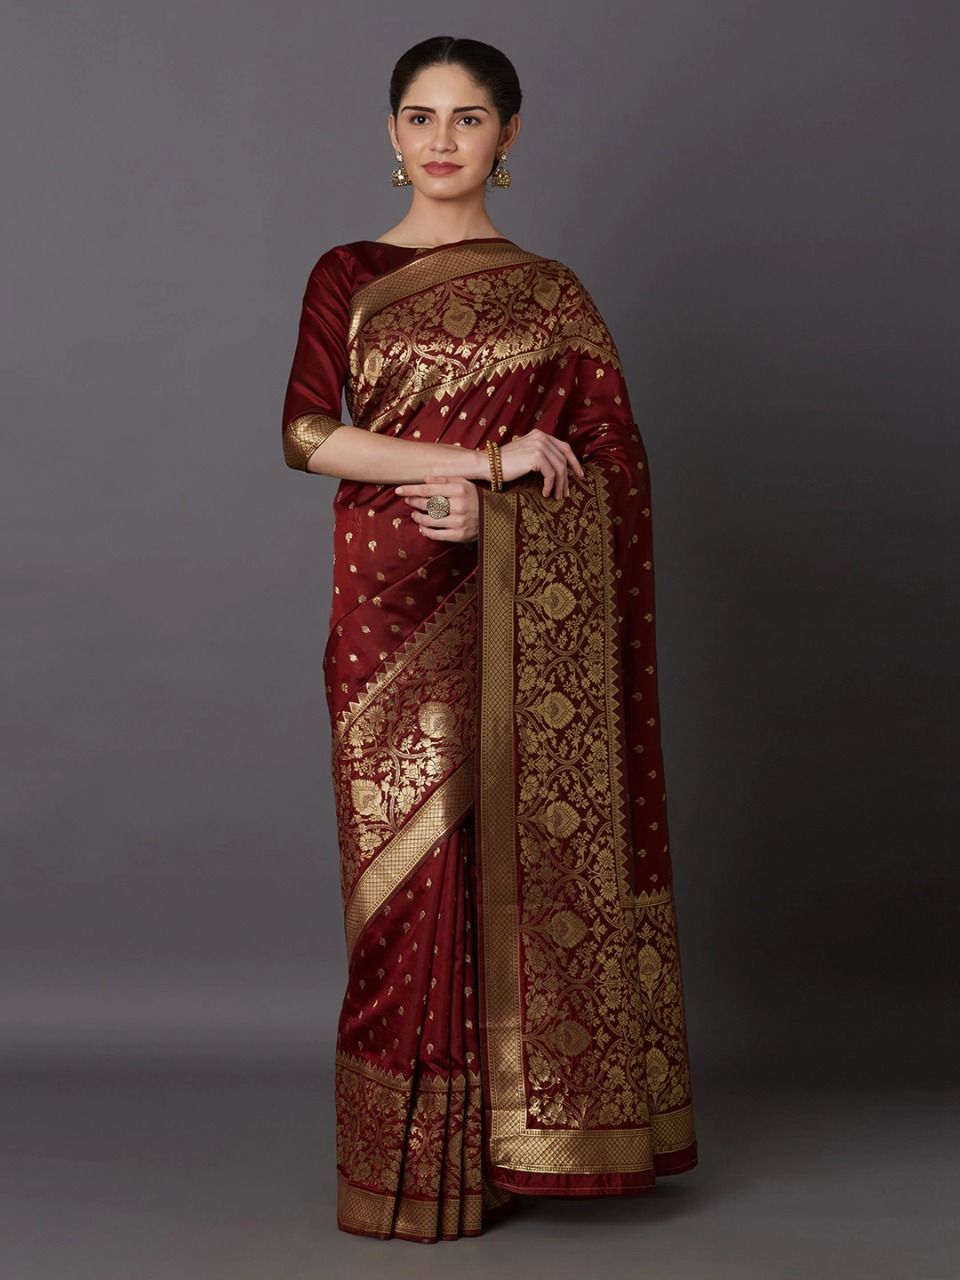 Latest & Exclusive Luxury Stylish Glorious Design saree with gorgeous Blouse Piece for woman